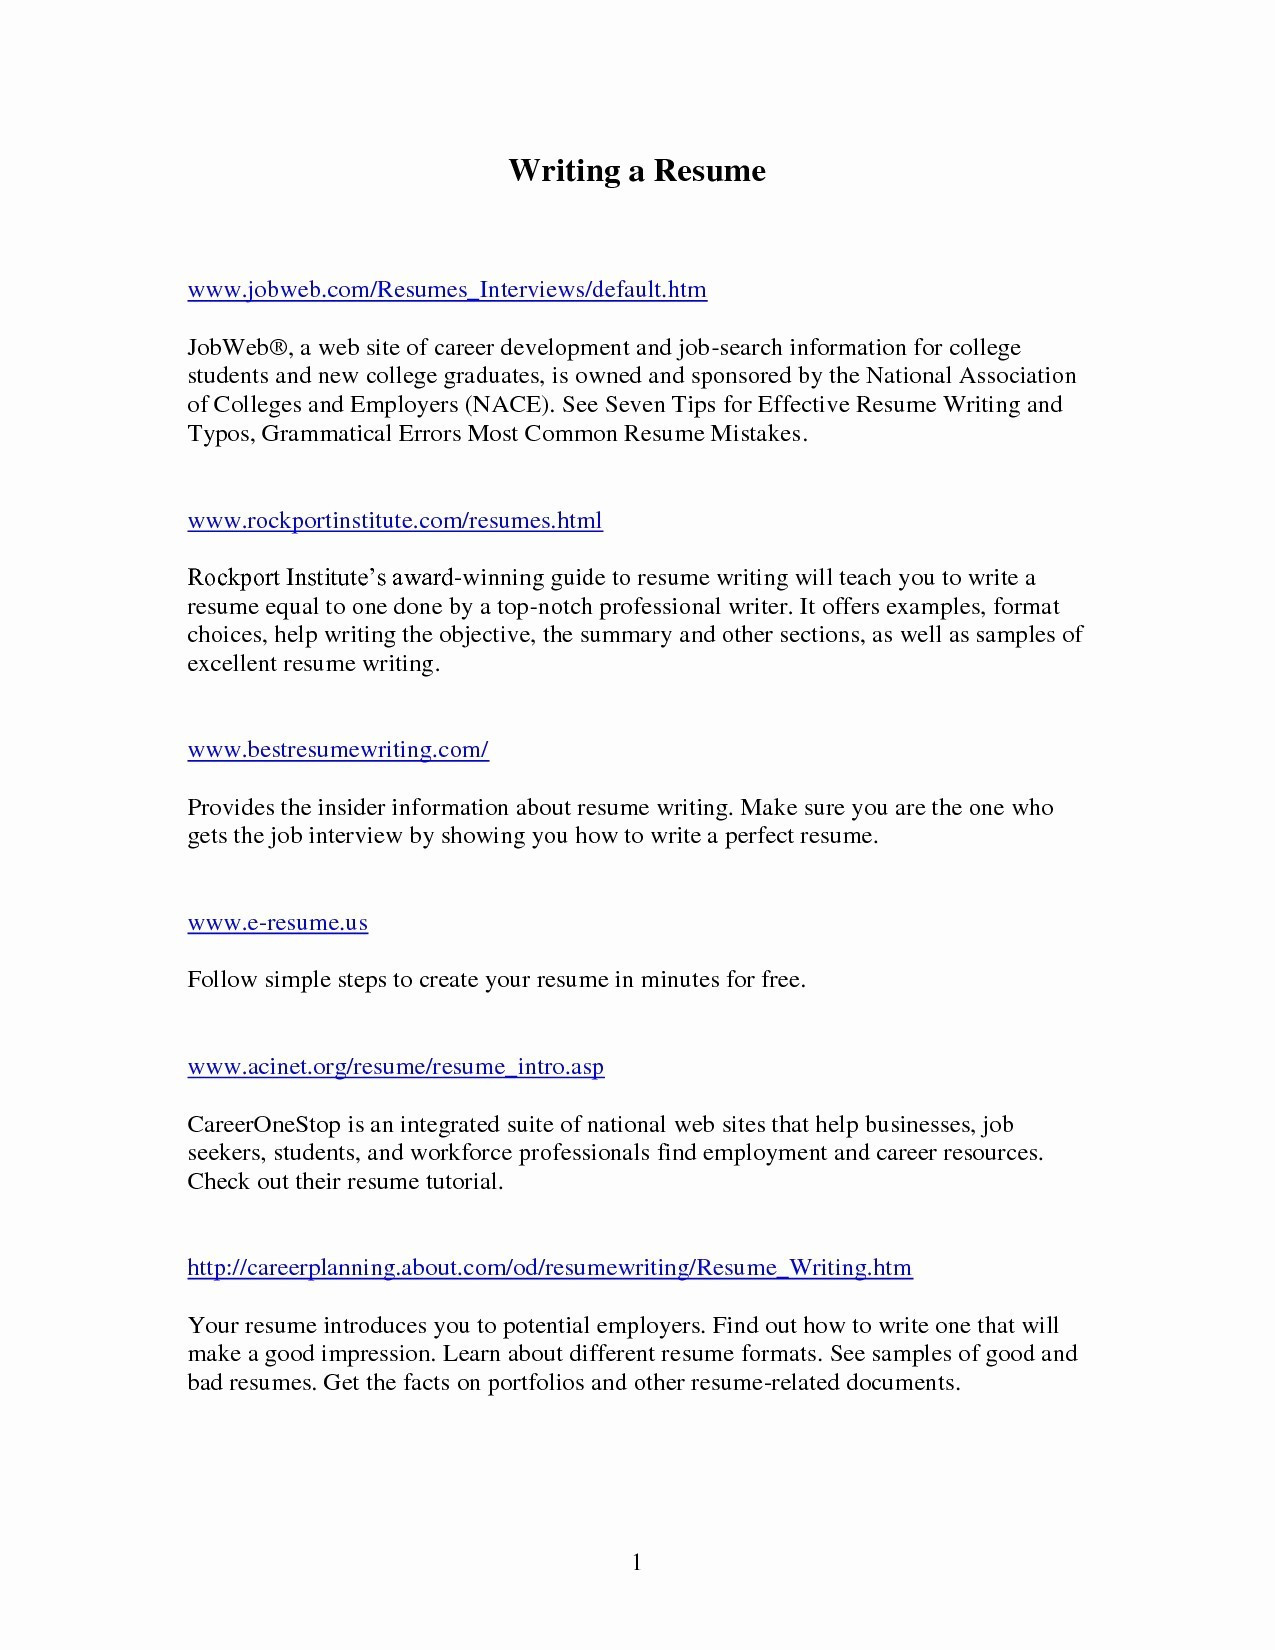 Search Resumes Online - Beautiful Line Cv New Resume format Professional Resume Resume